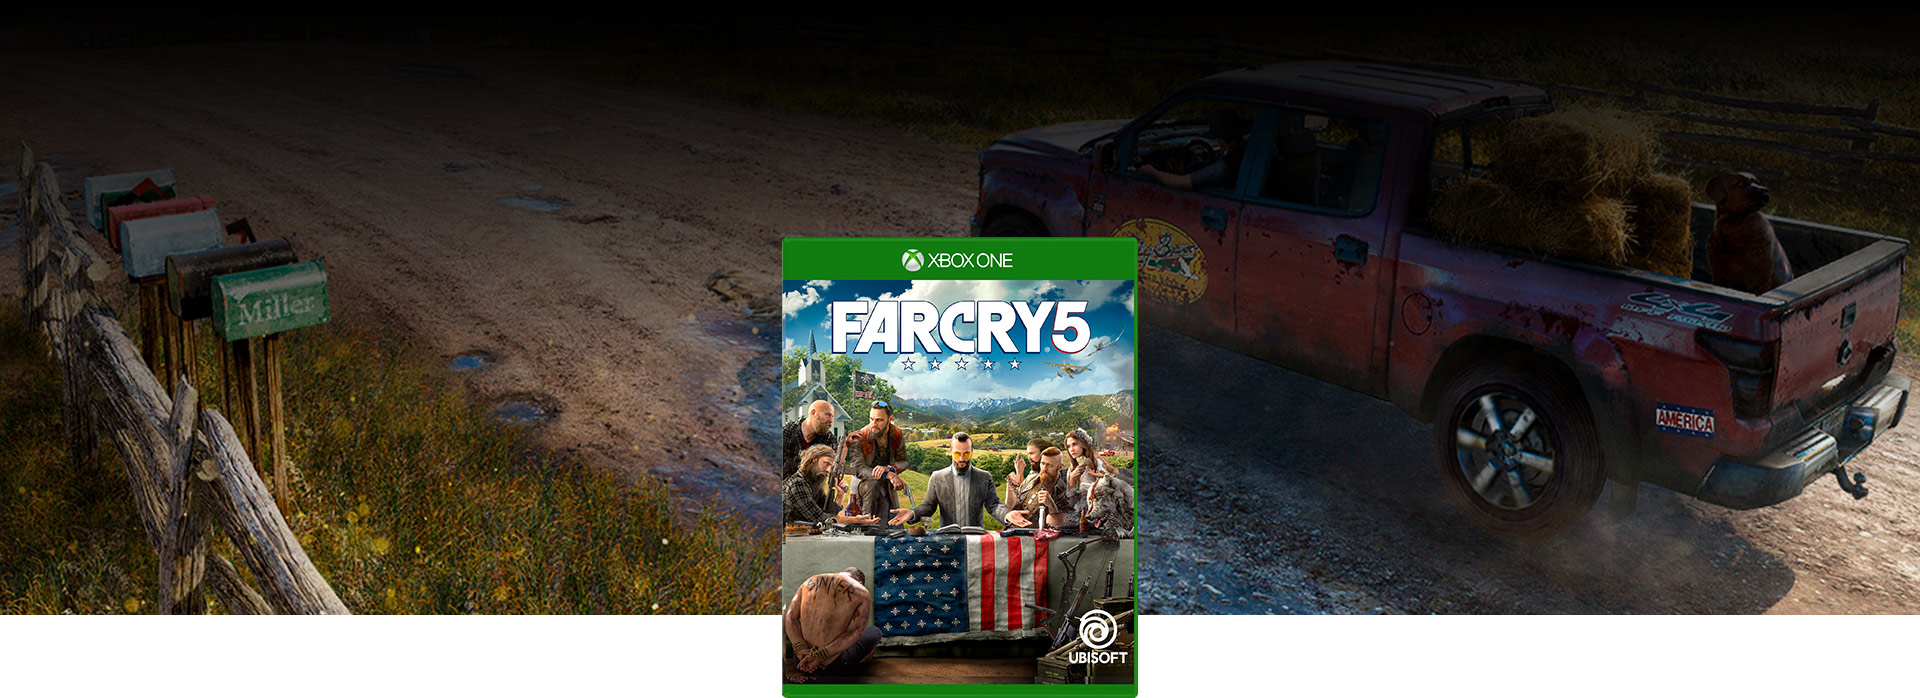 Far Cry 5 boxshot over background of pickup truck with dog and hay in flatbed driving down dirt road.